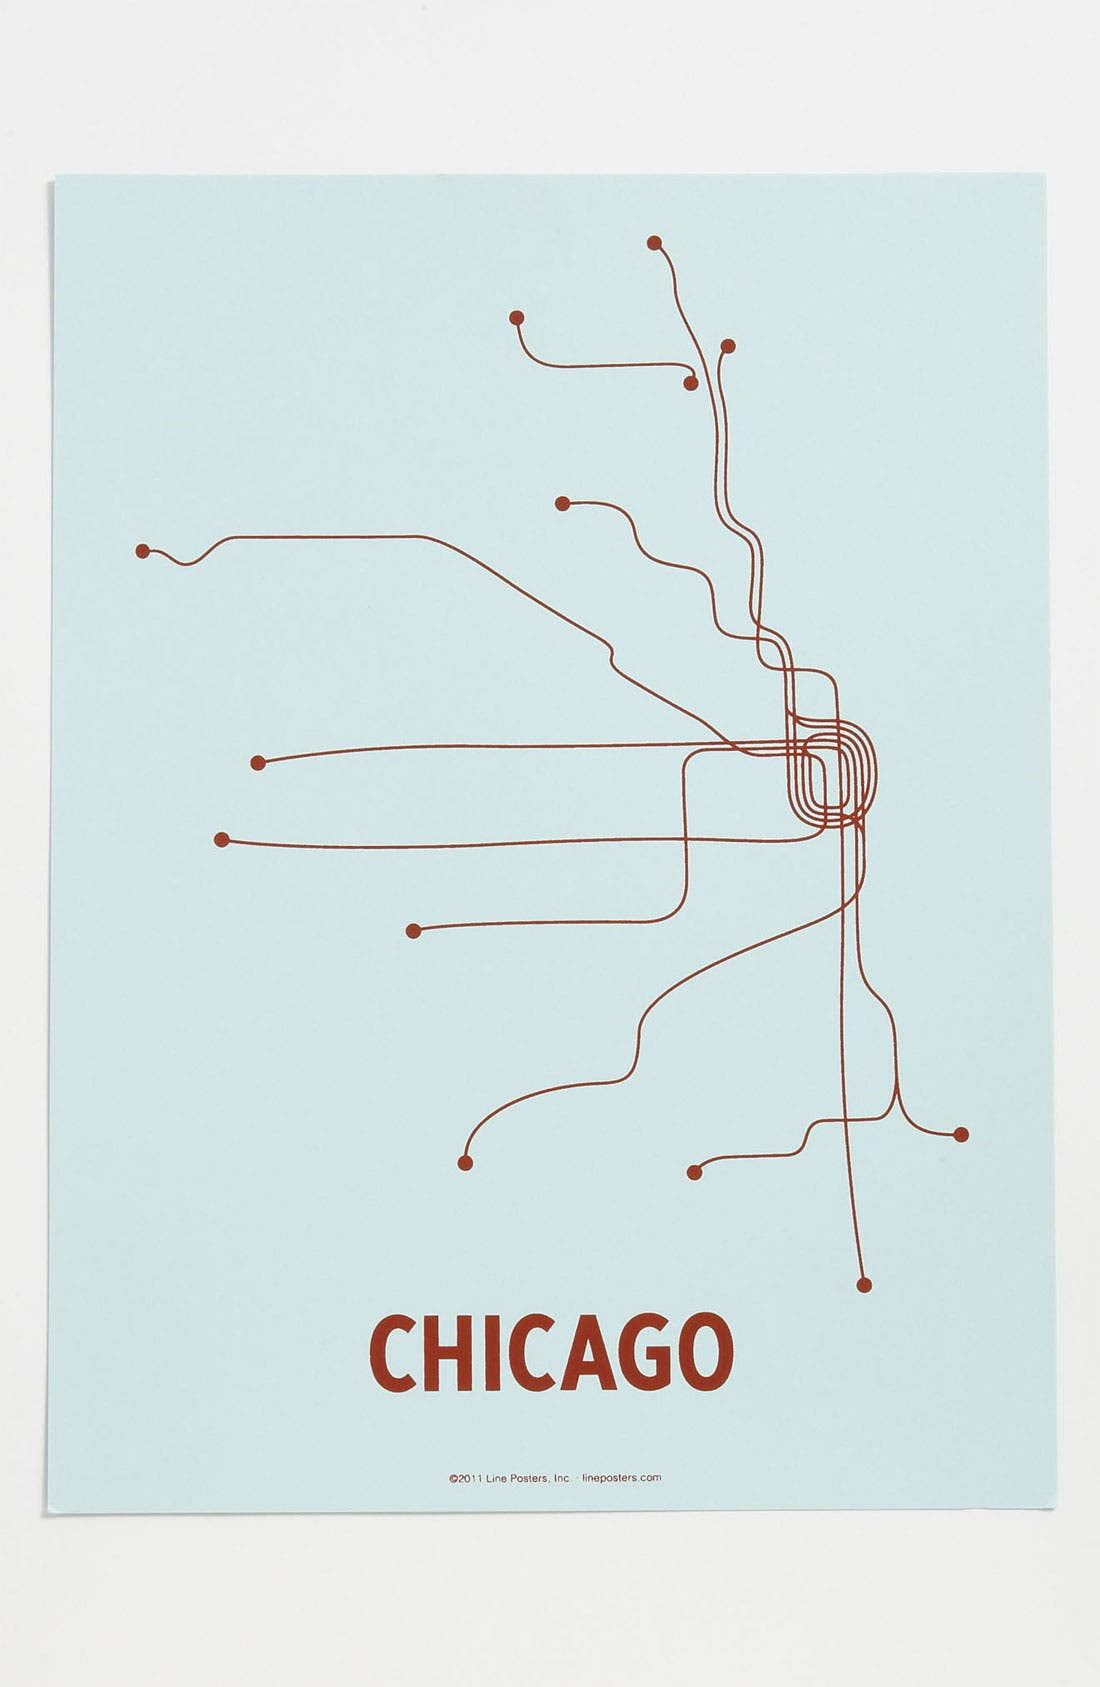 Alternate Image 1 Selected - Line Posters 'Chicago Transit System - Small' Print